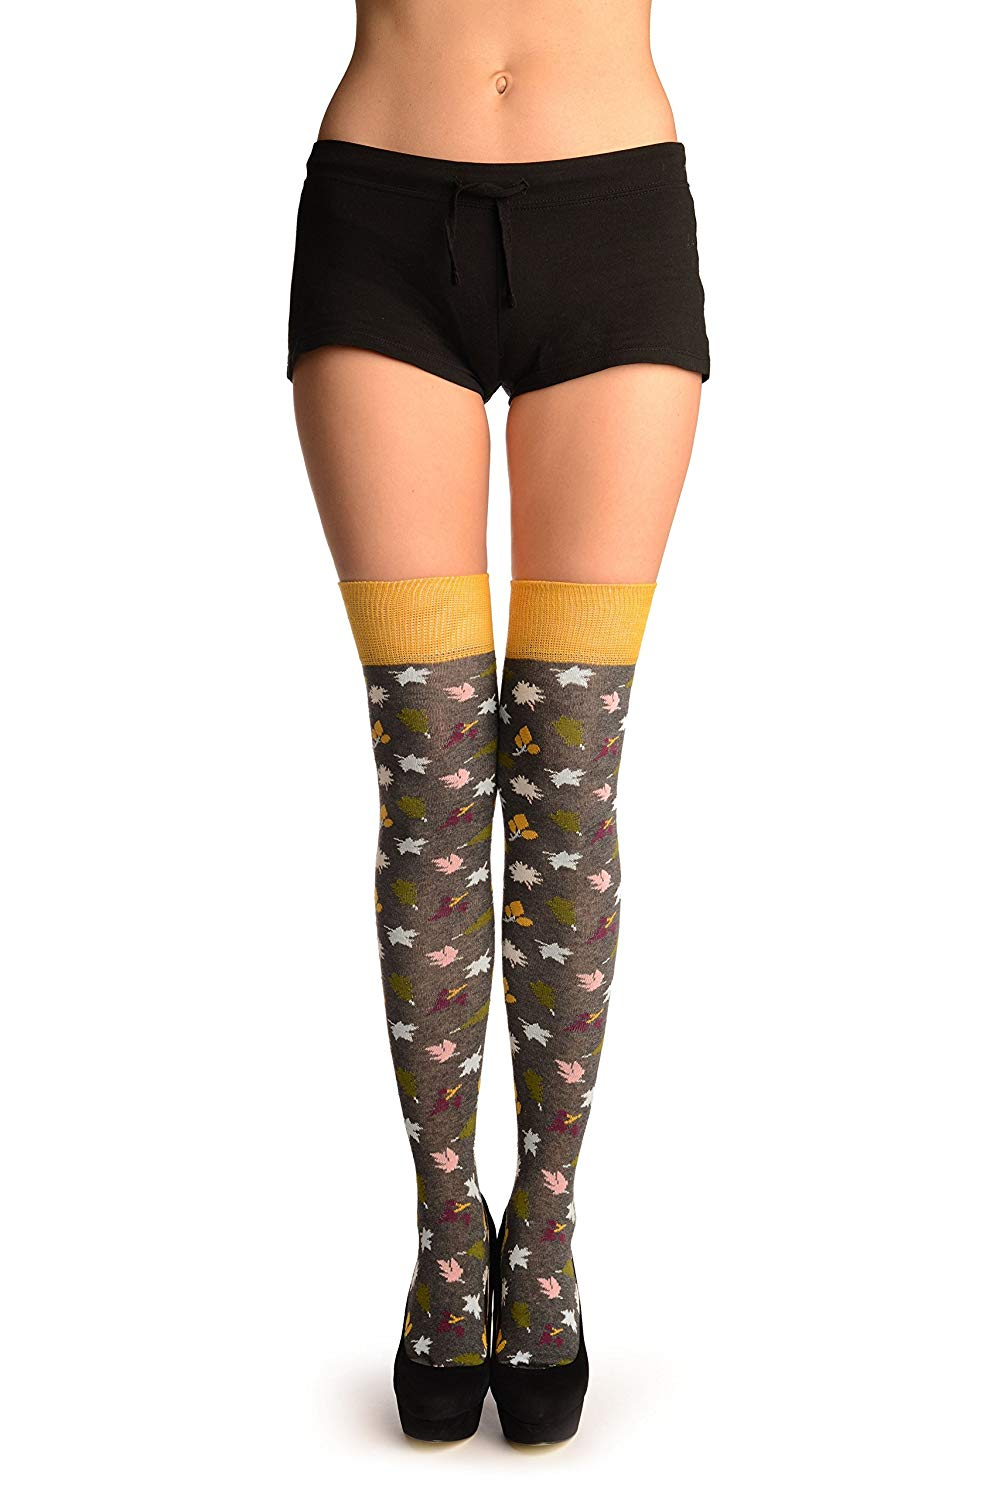 92d0a02a9 Get Quotations · Grey With Autumn Leaves Over The Knee Socks - Grey Floral  Over The Knee Socks